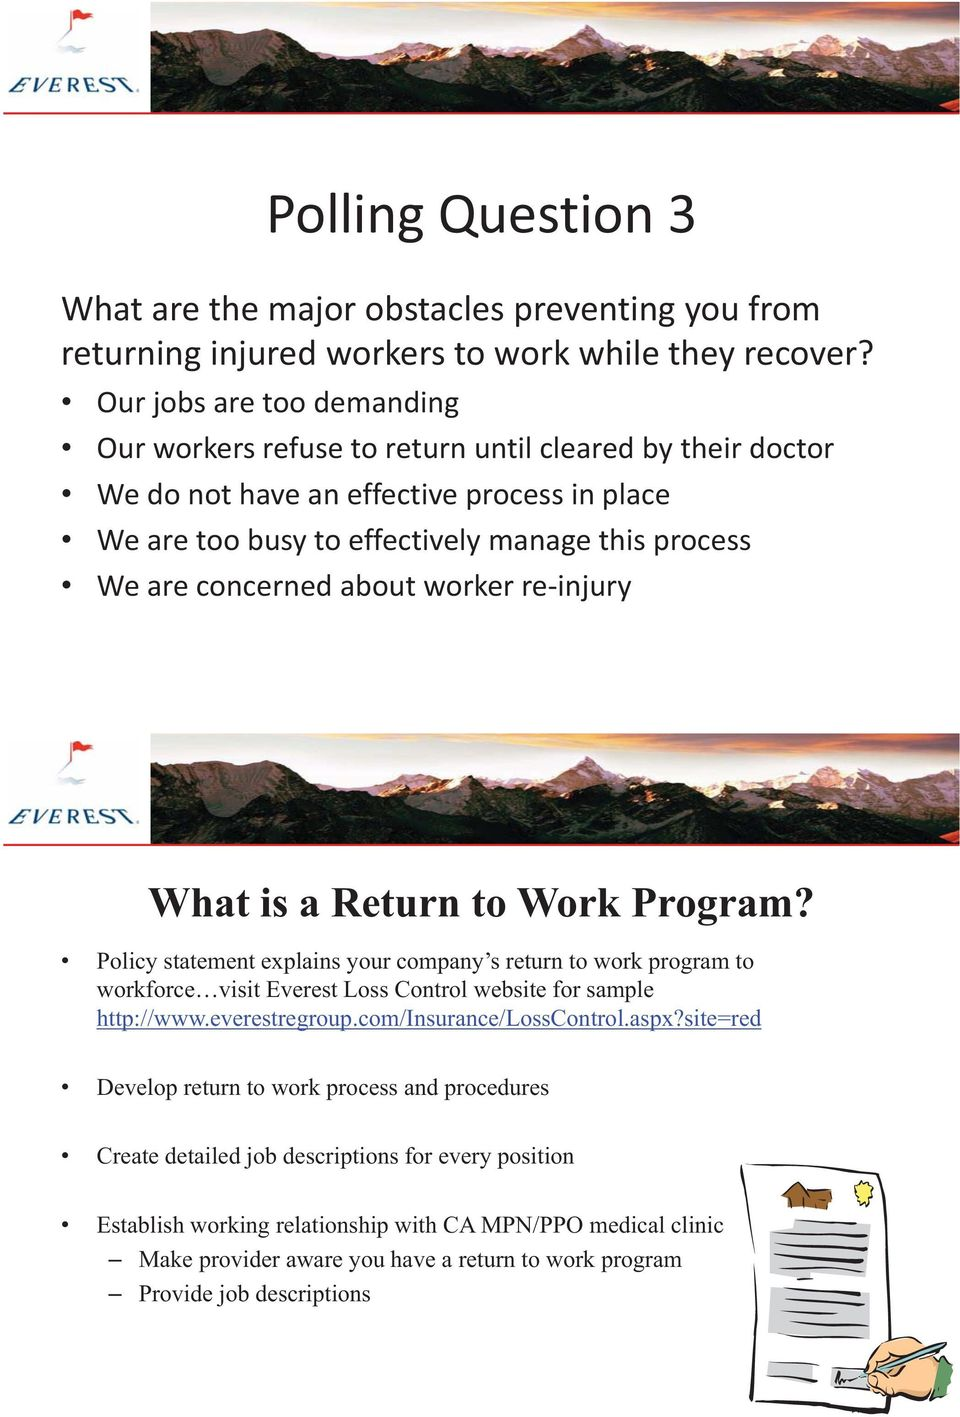 about worker re-injury What is a Return to Work Program? Policy statement explains your company s return to work program to workforce visit Everest Loss Control website for sample http://www.